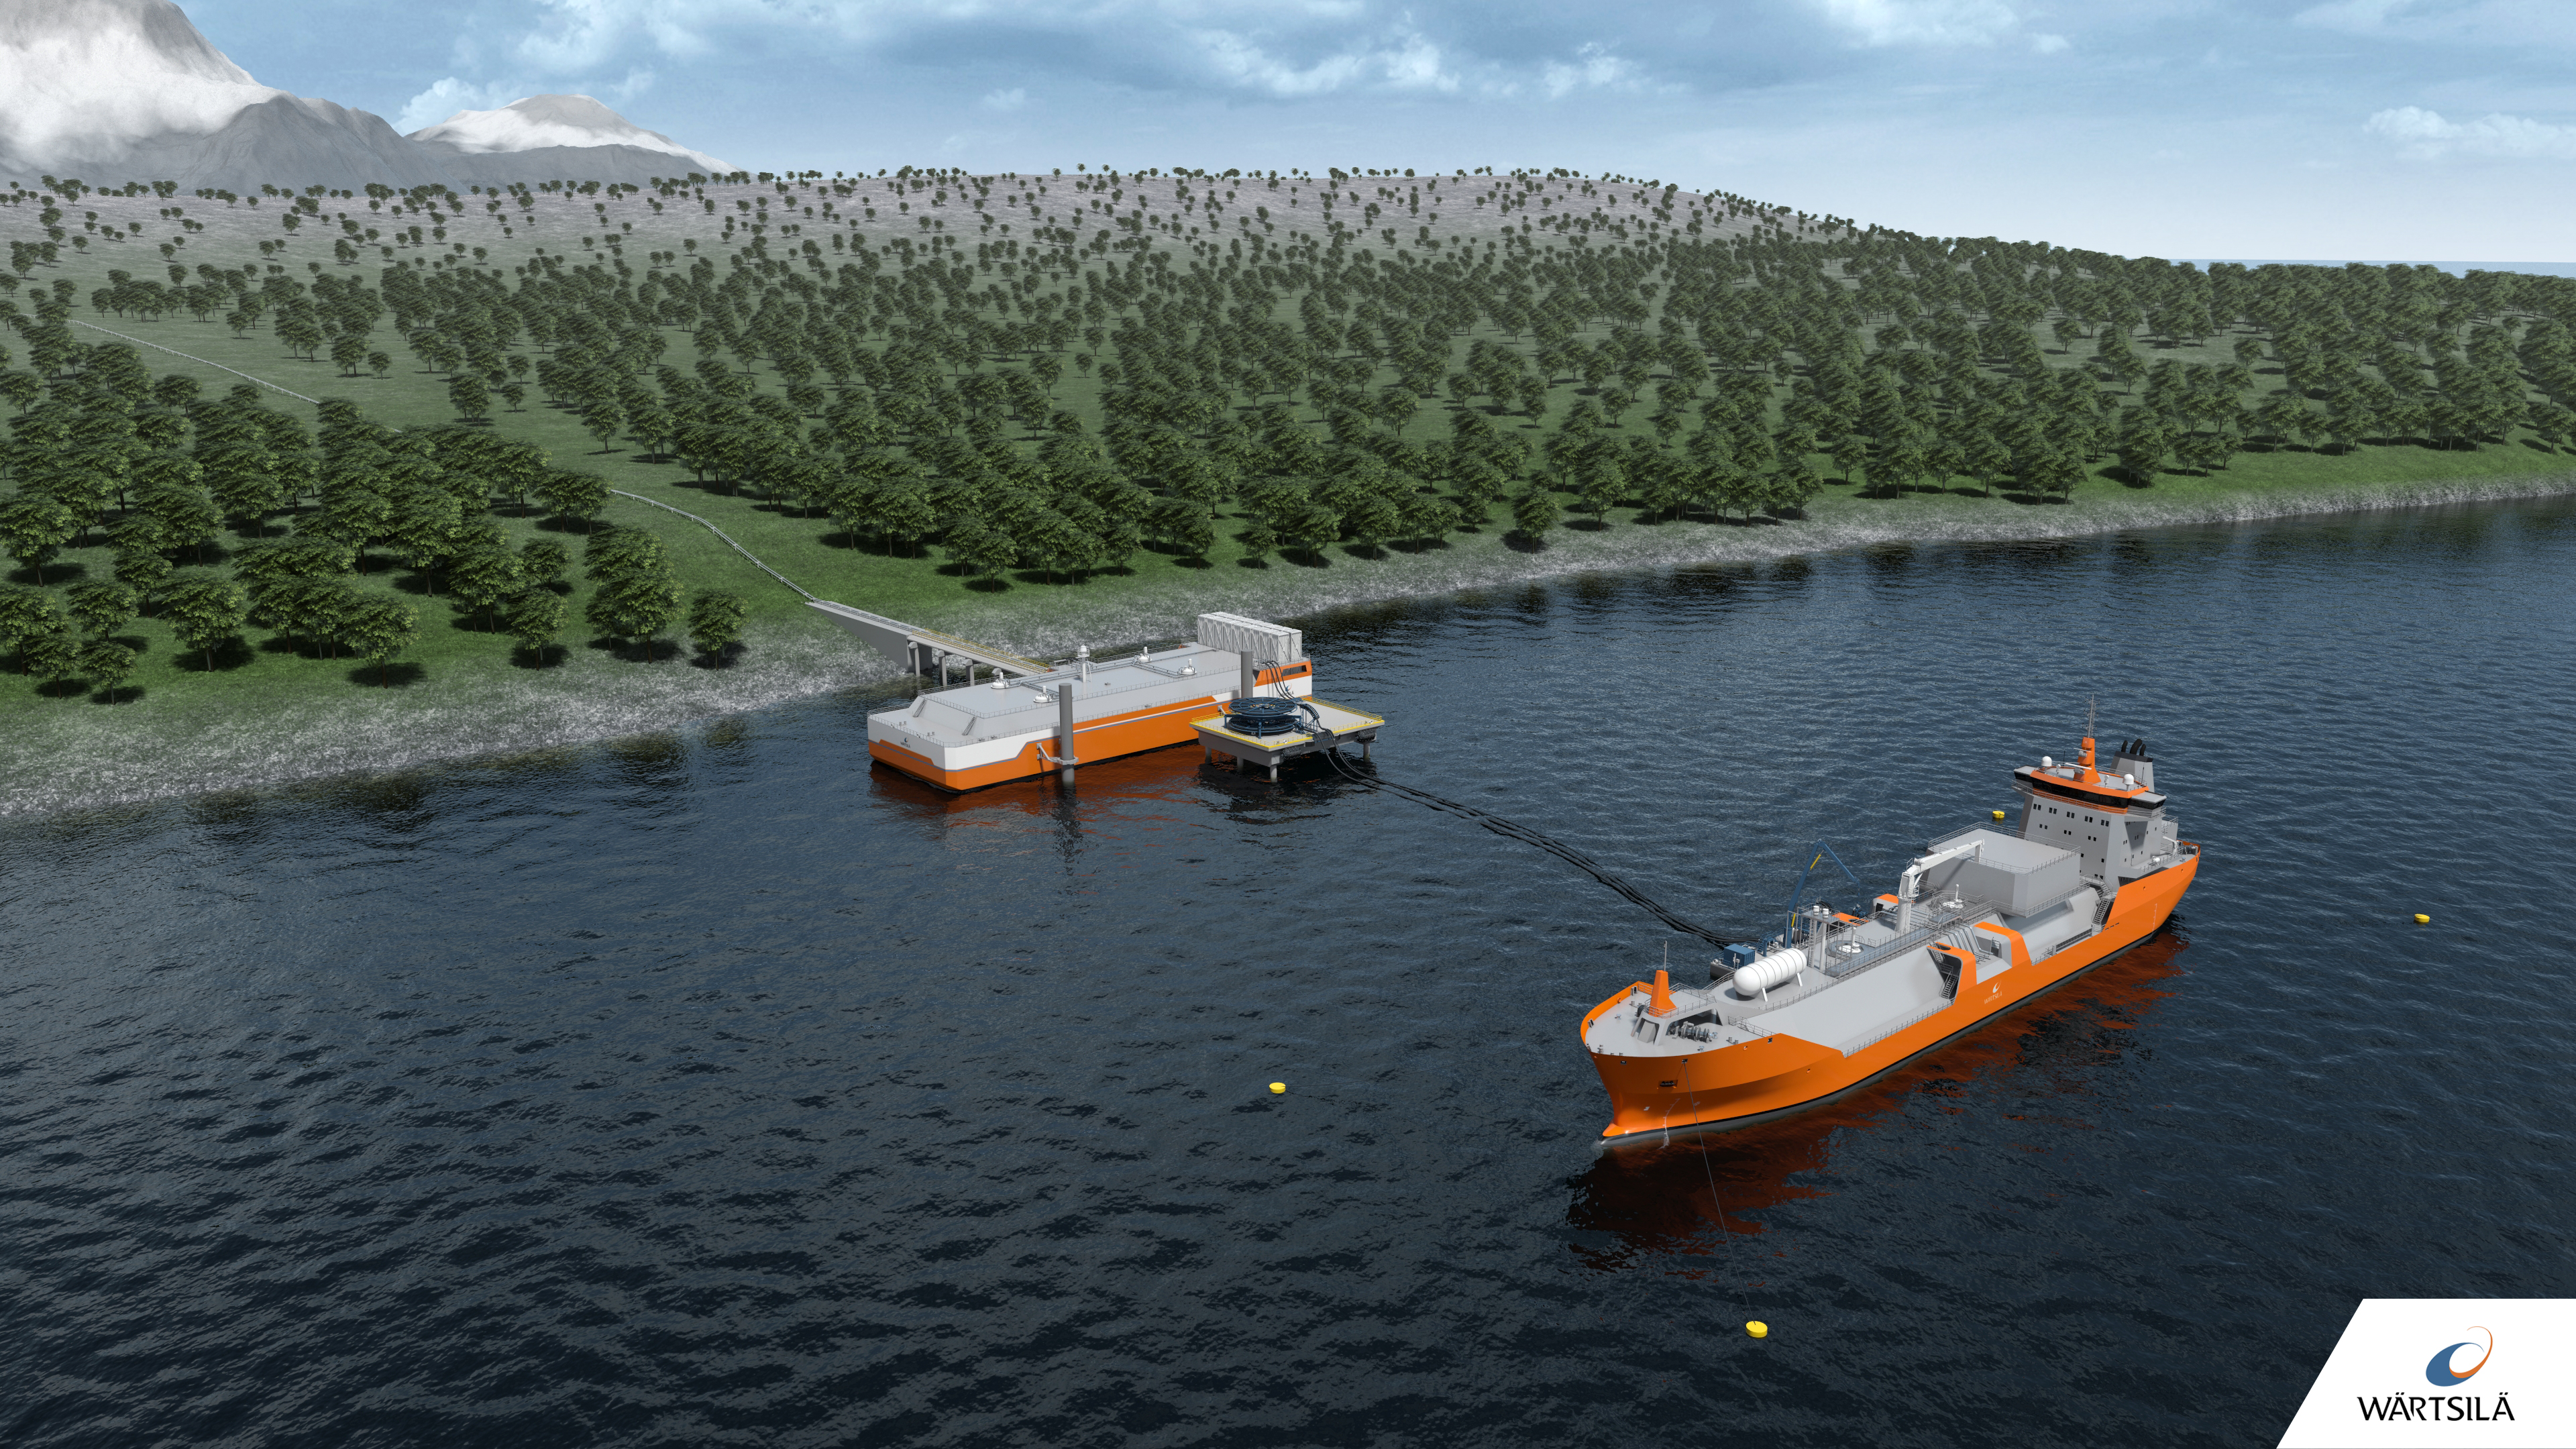 FSRB at shore and LNG connection by floating hoses to barrier